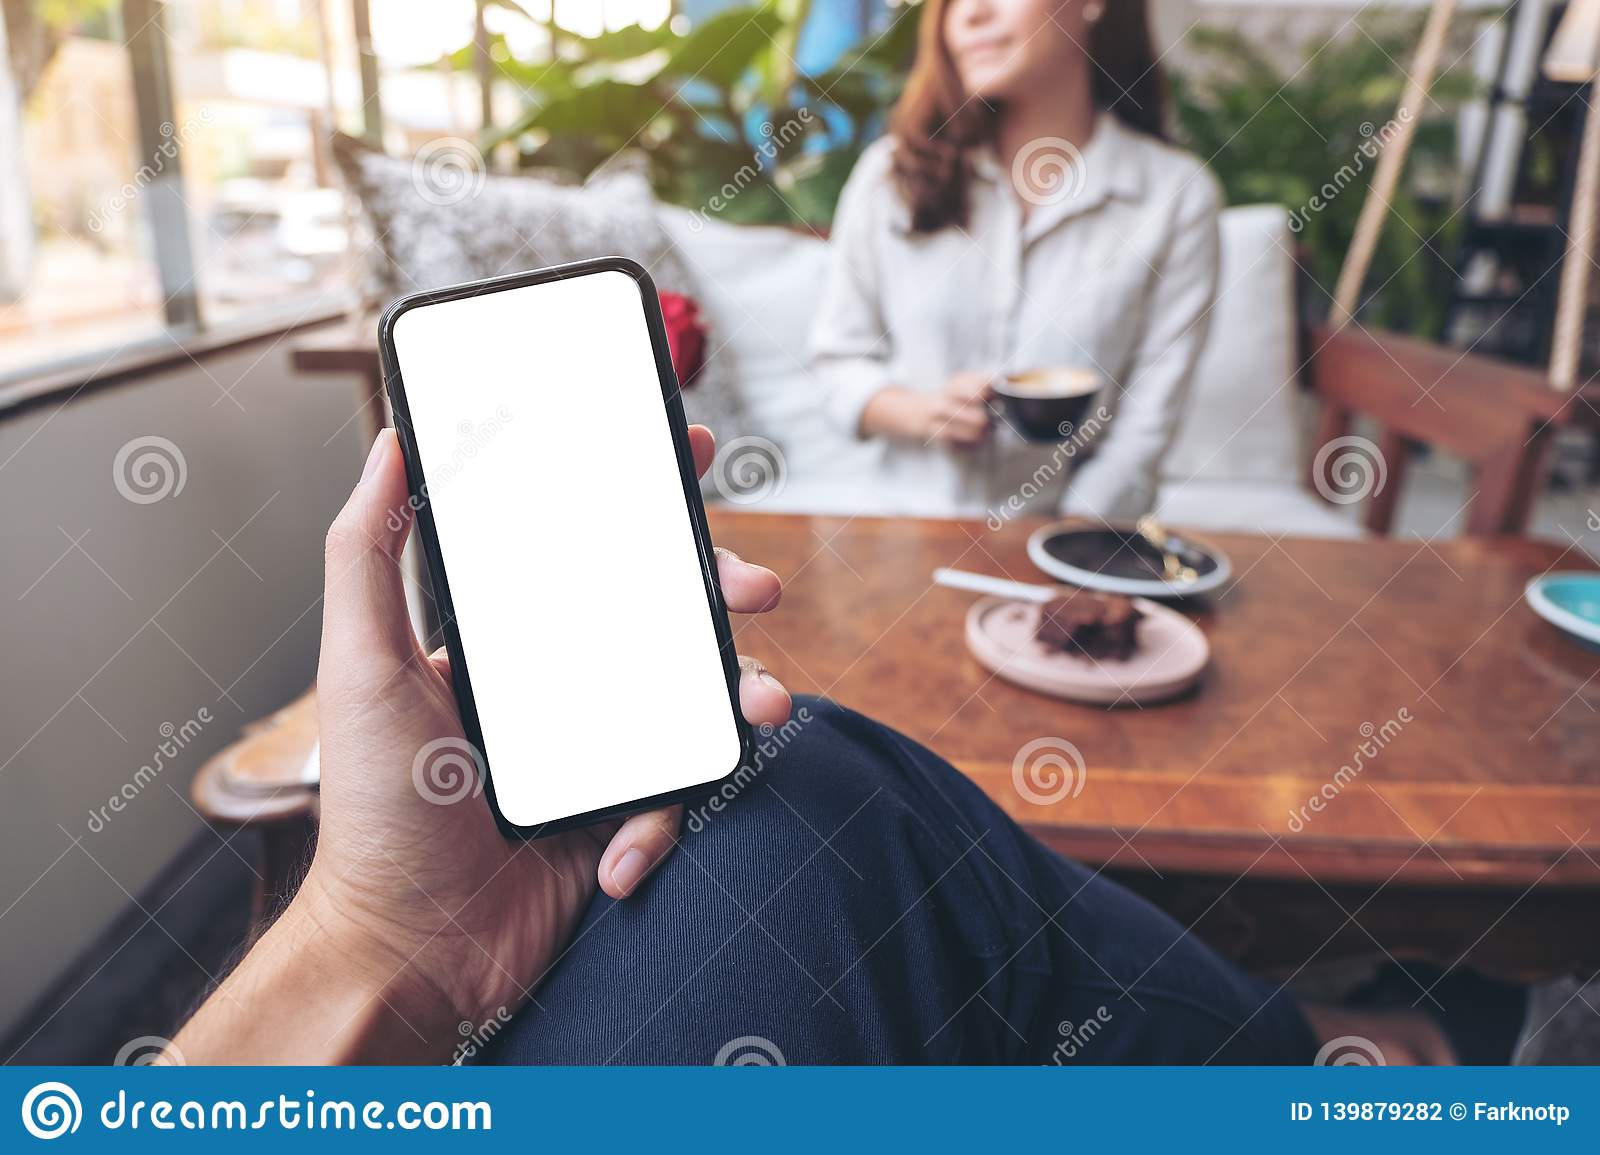 A man`s hand holding black mobile phone with blank white screen with woman sitting in cafe